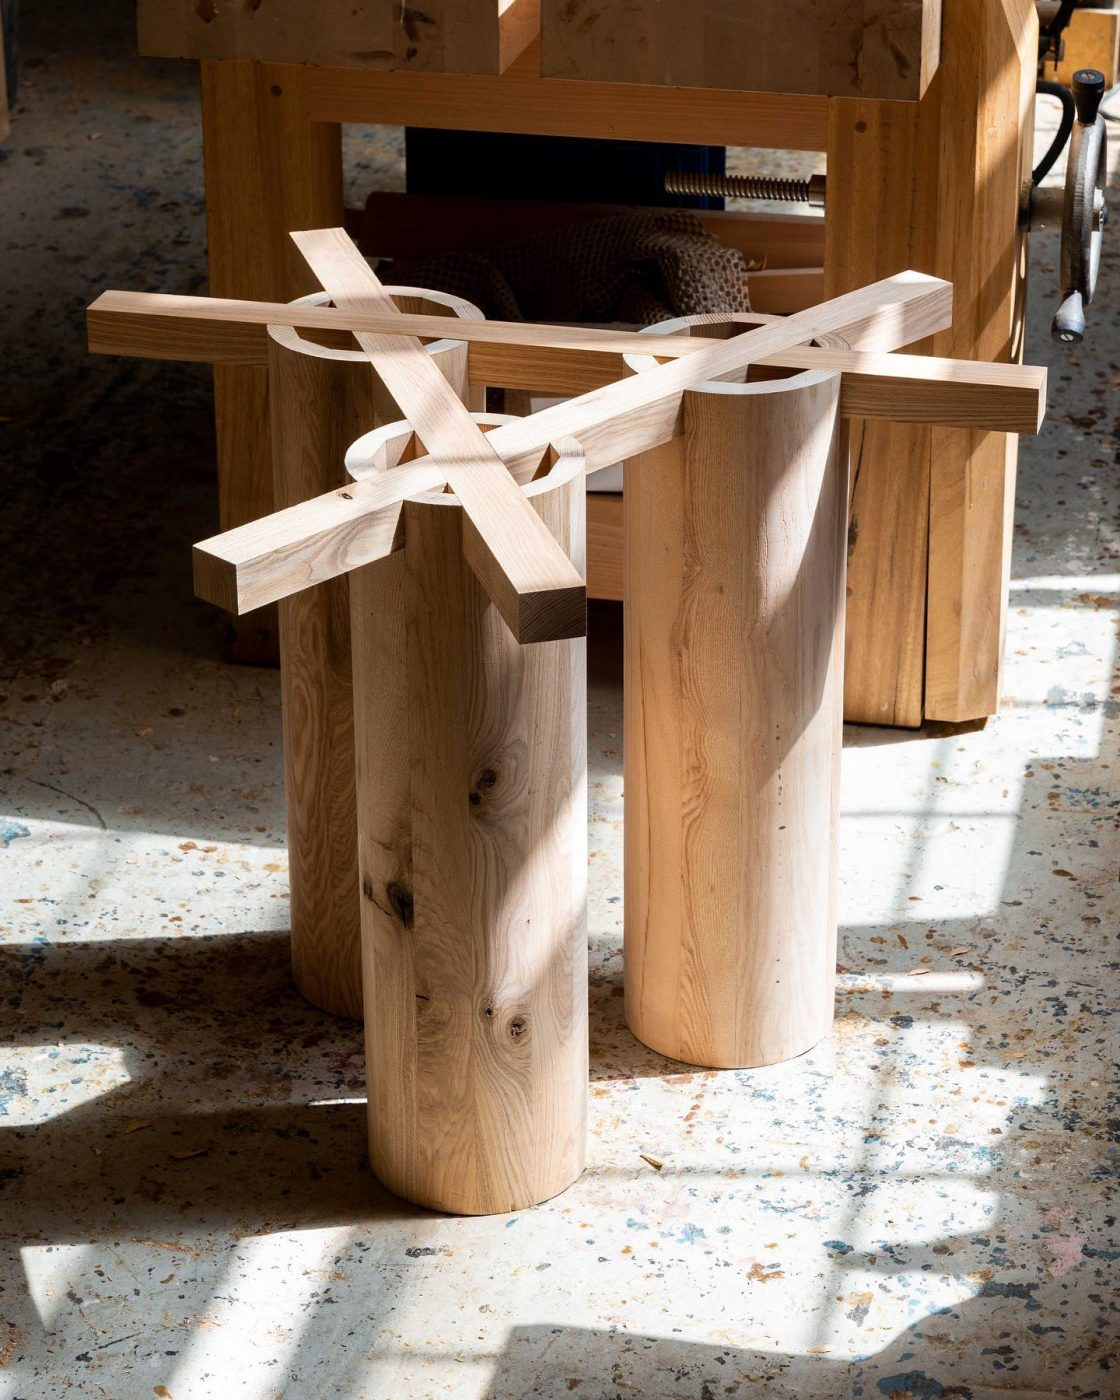 tubular-timbers-and-precision-joinery.-a-fine-combo-for-our-latest-furniture-experiments.-new-work-i